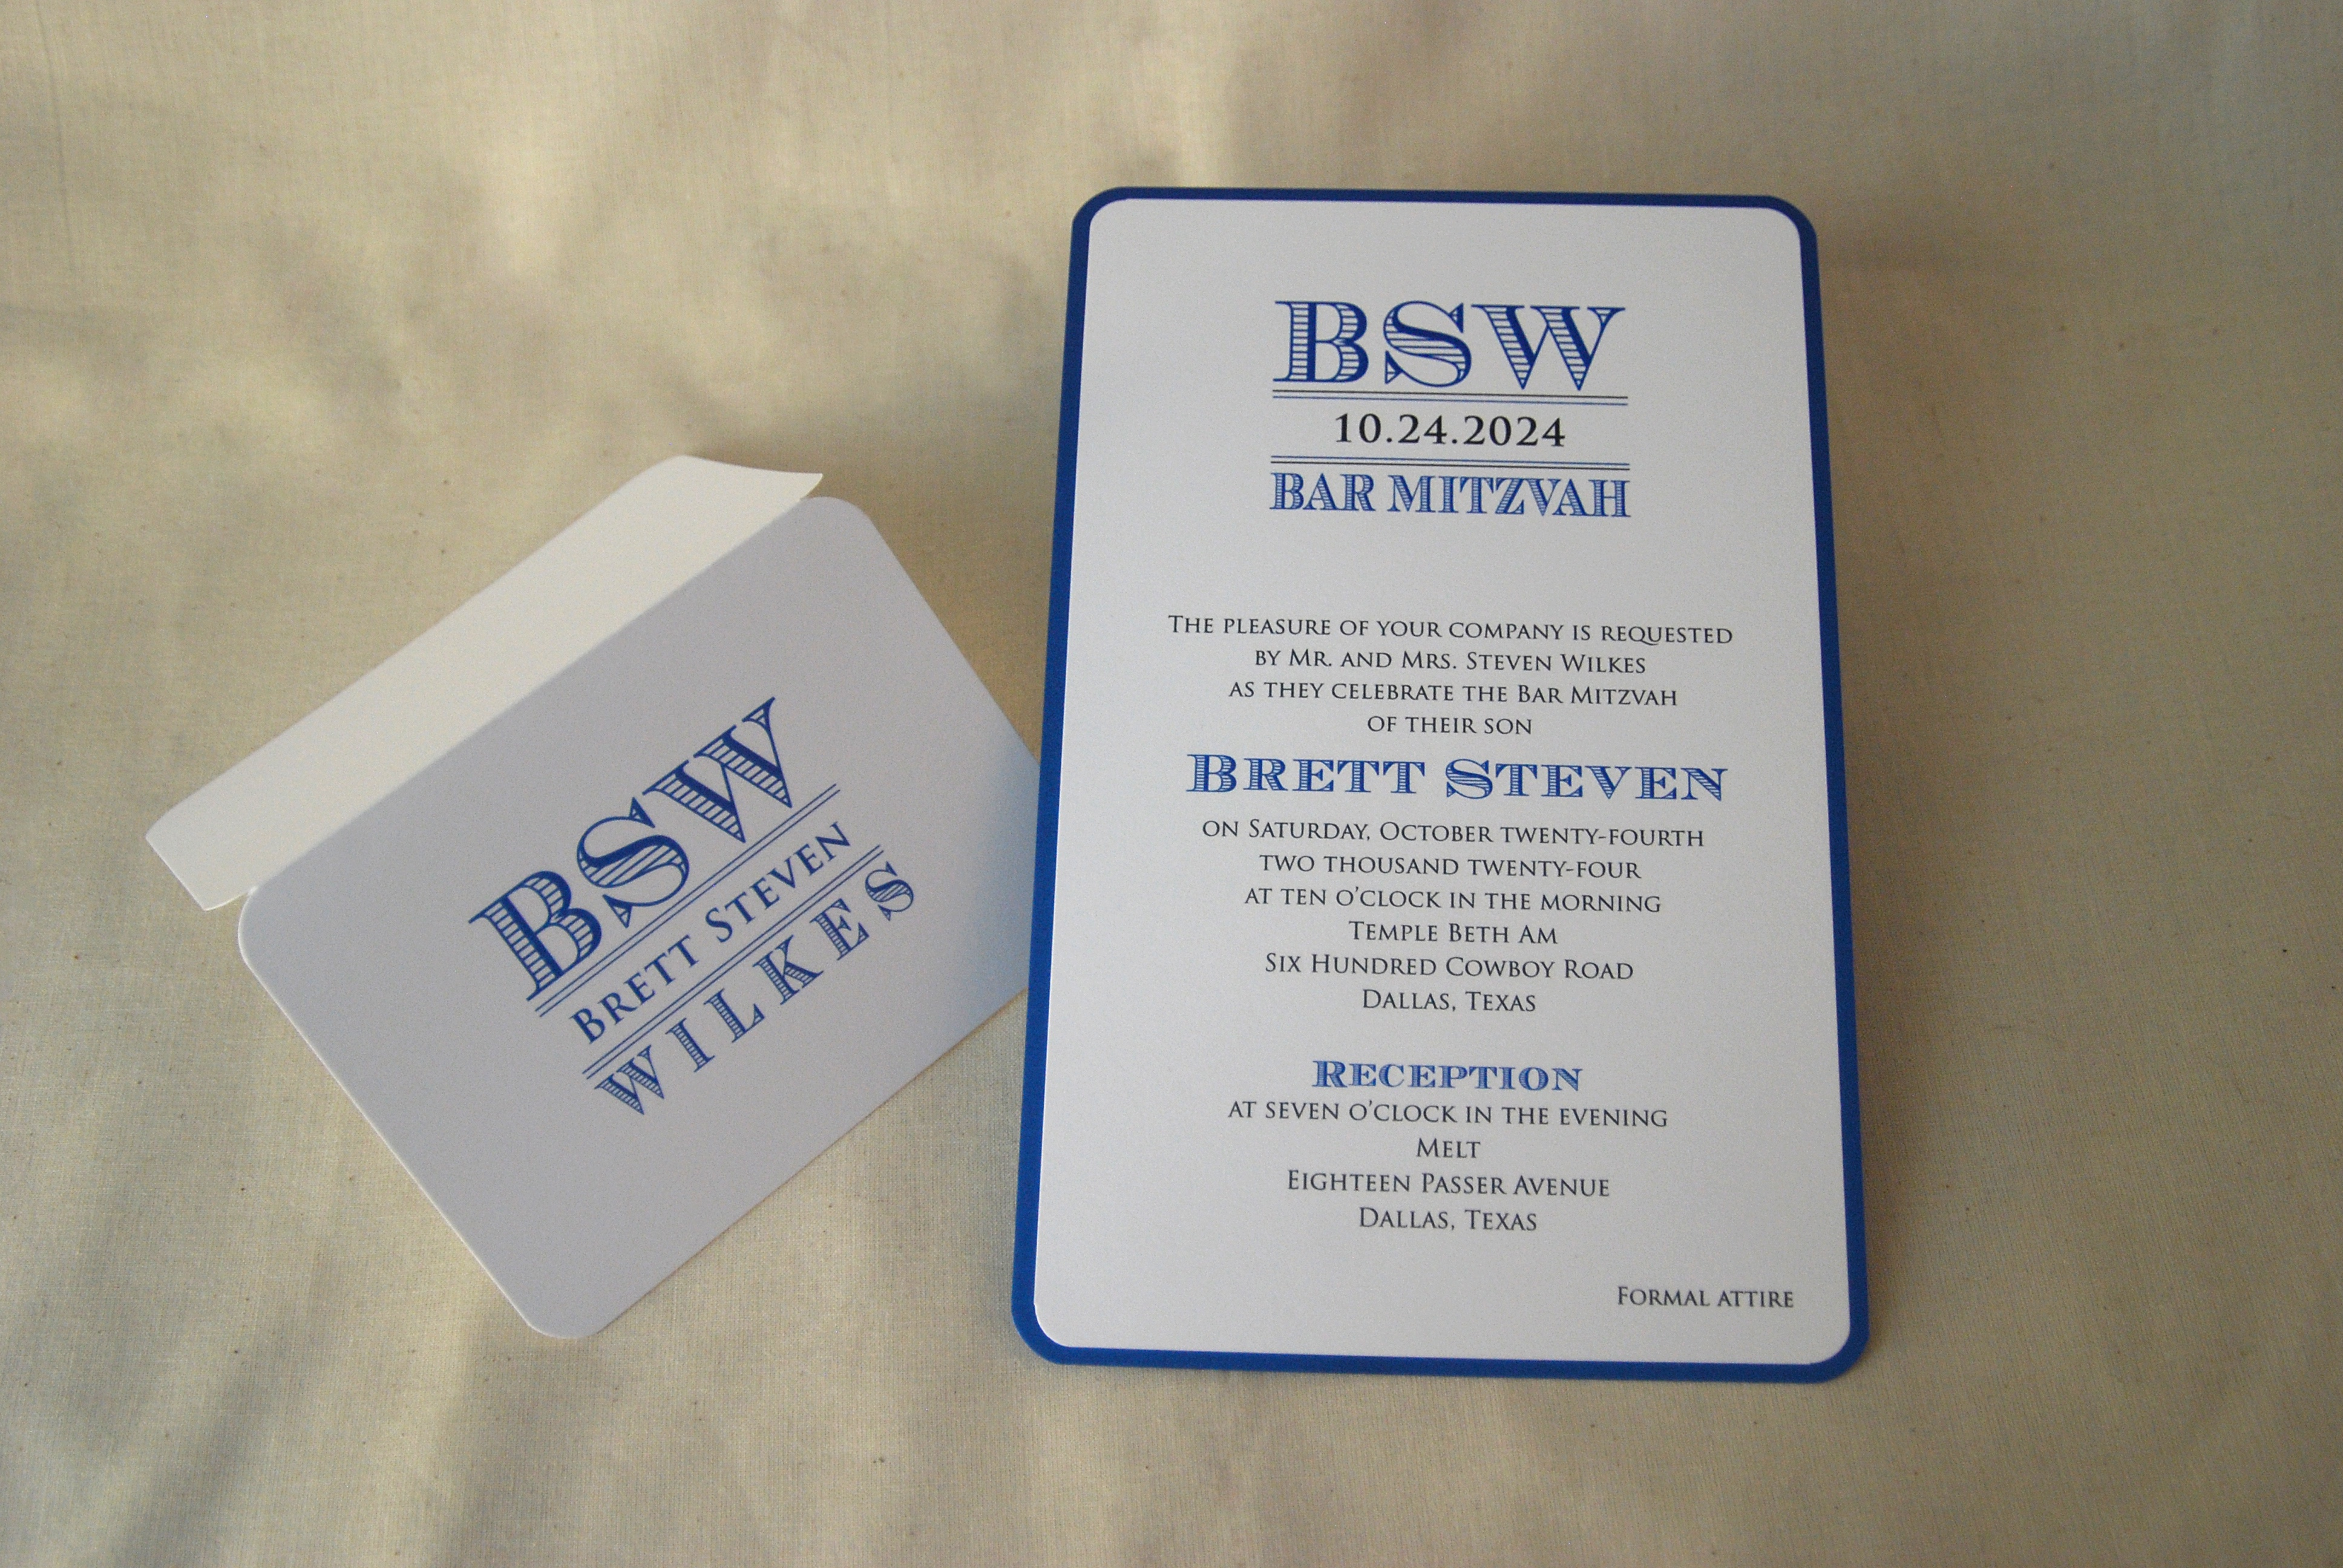 Brett Steven Layered Bar Mitzvah Invitation with Rounded Corders, navy and white.